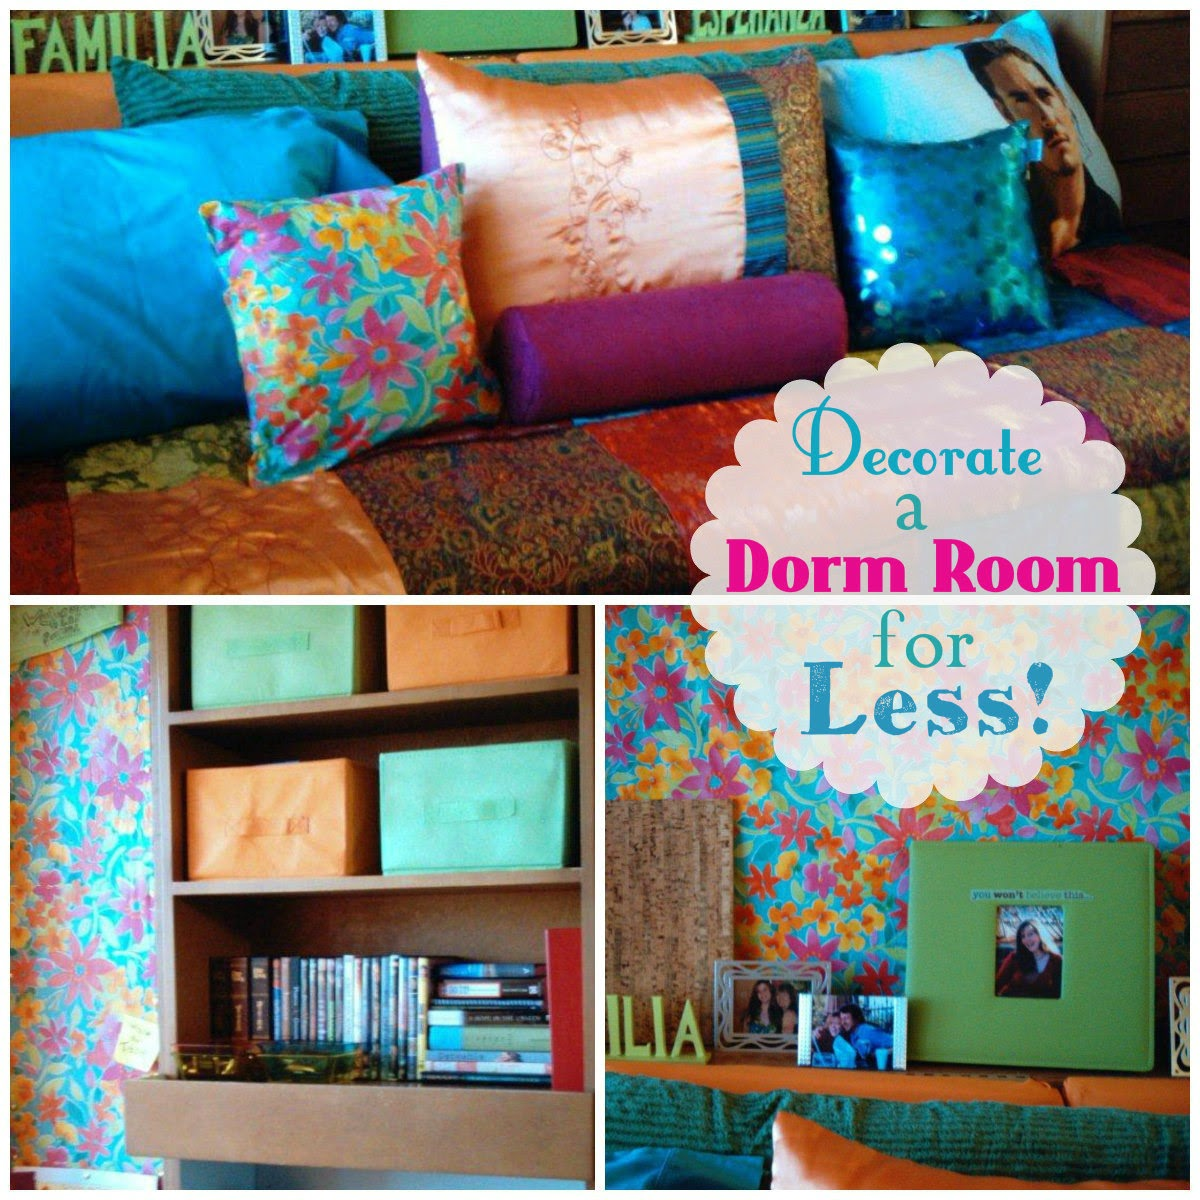 Dorm room for less